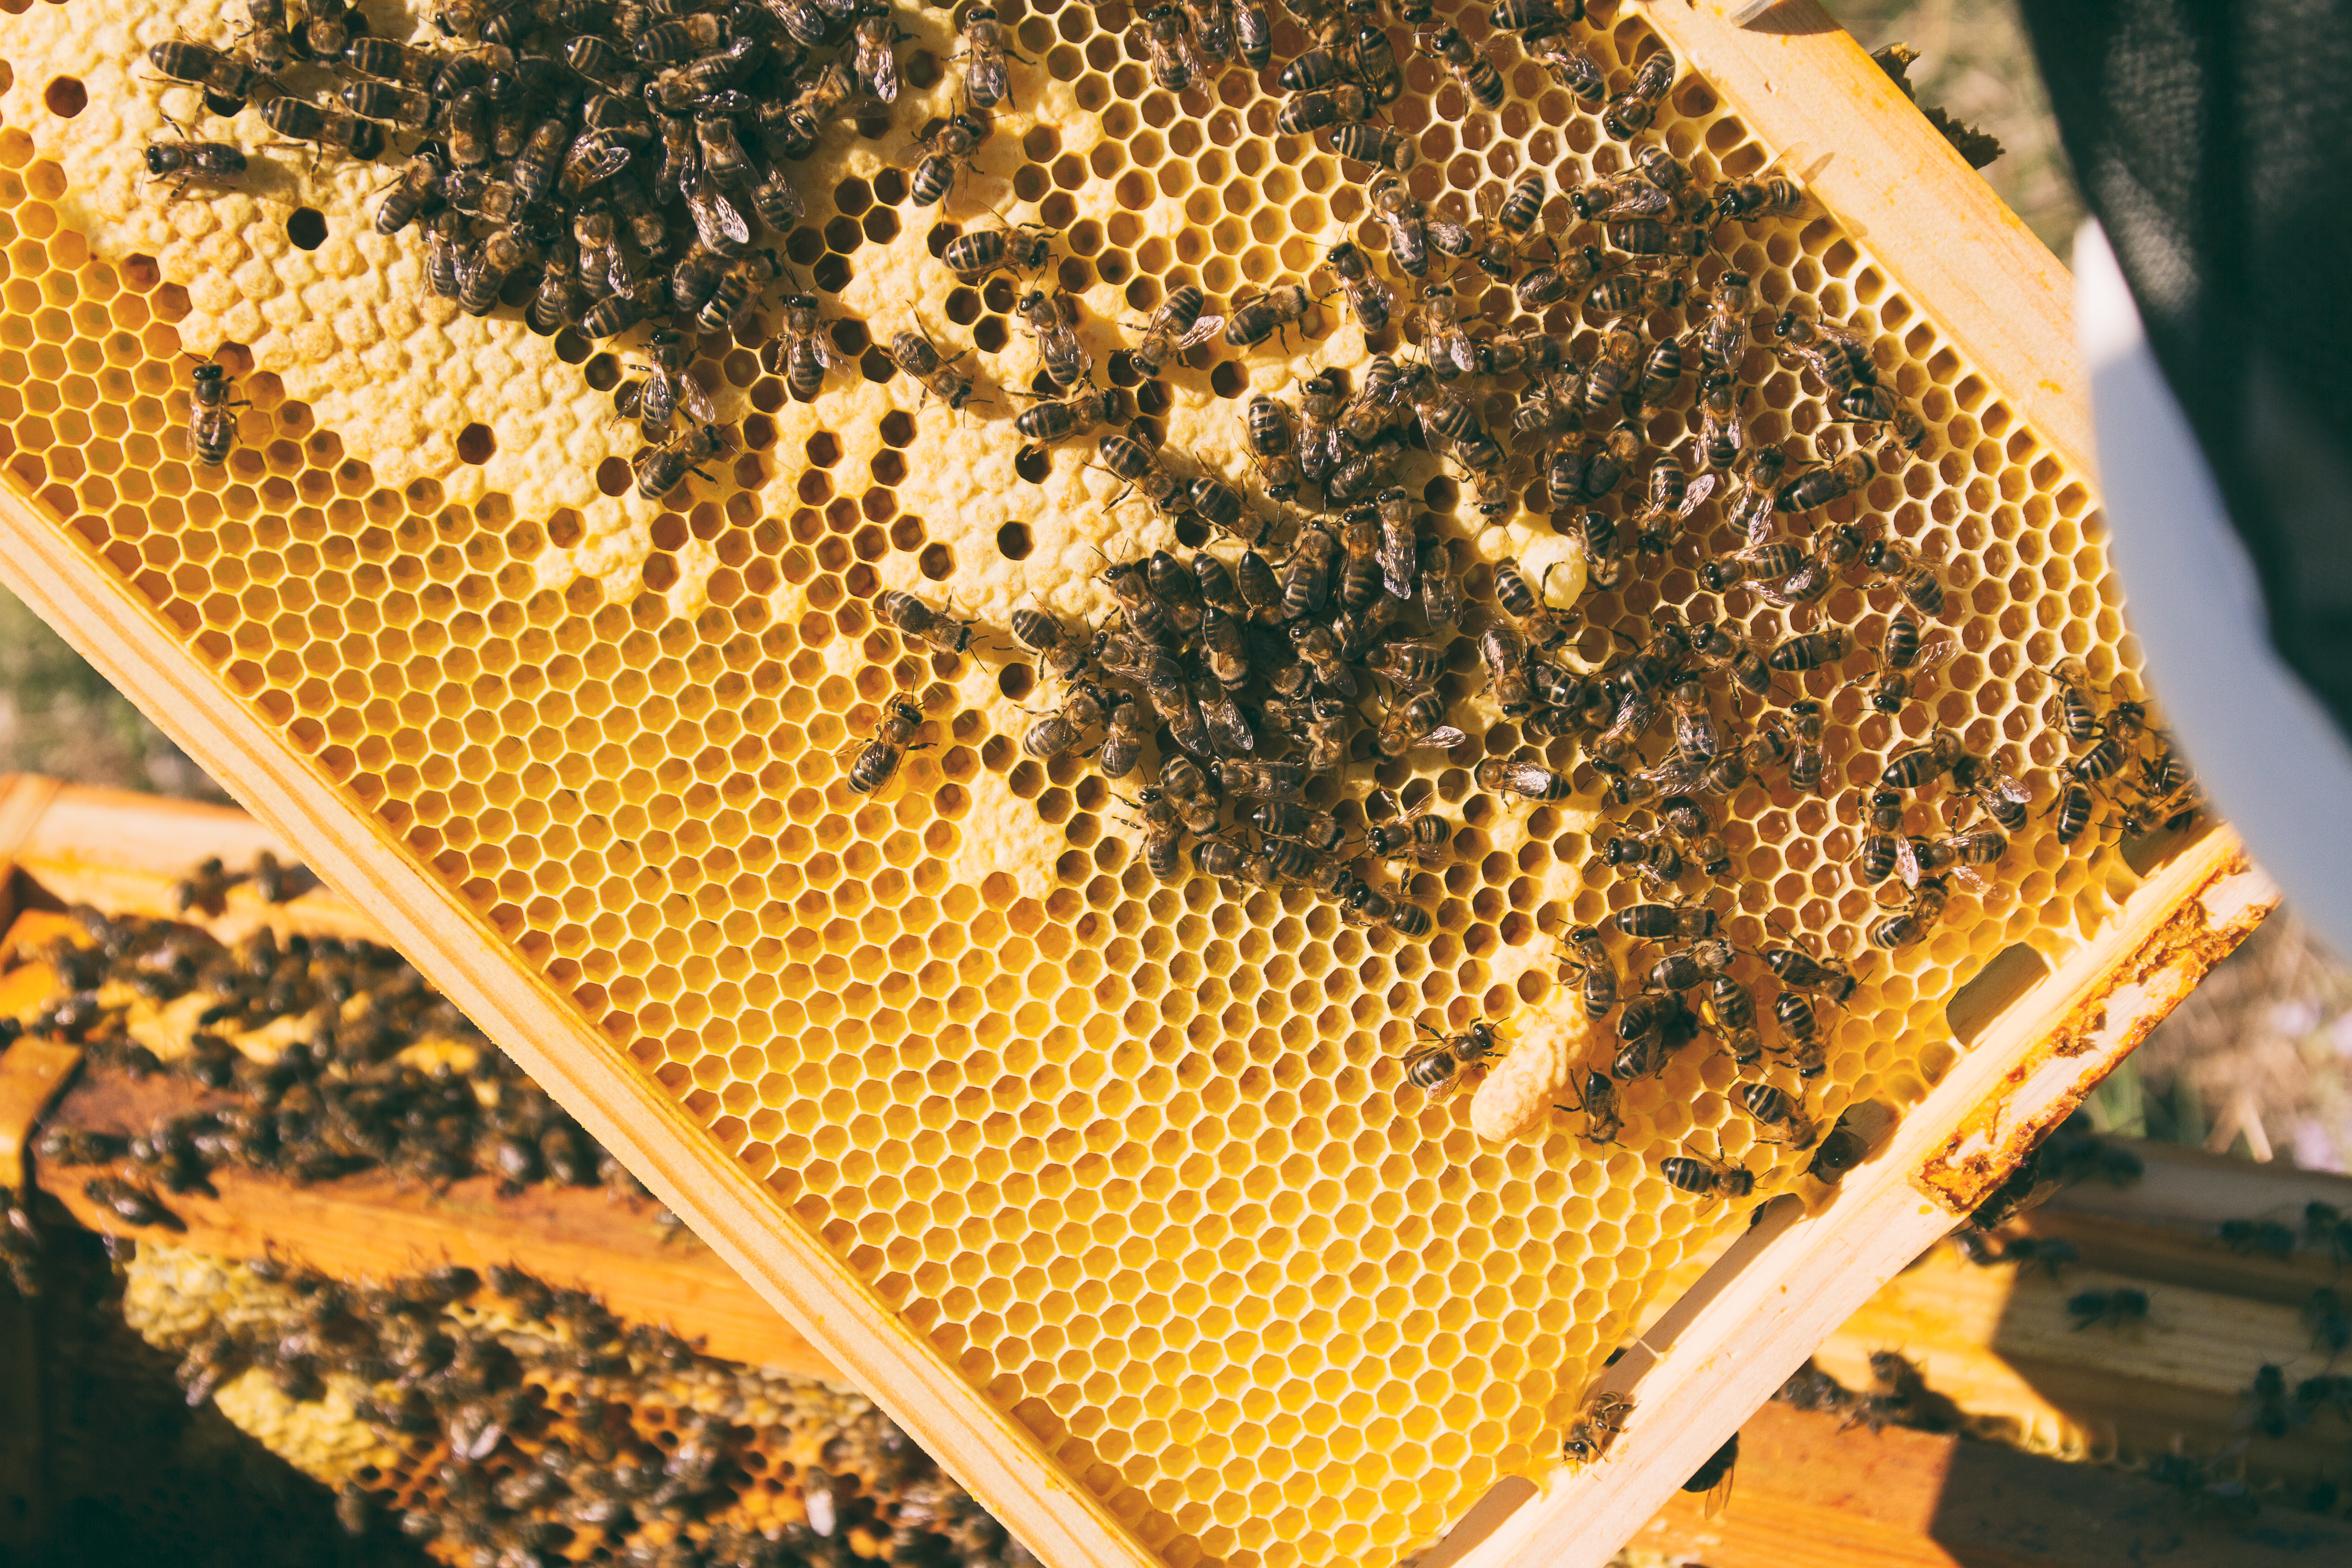 Where can I buy Dadant Beekeeping Supplies